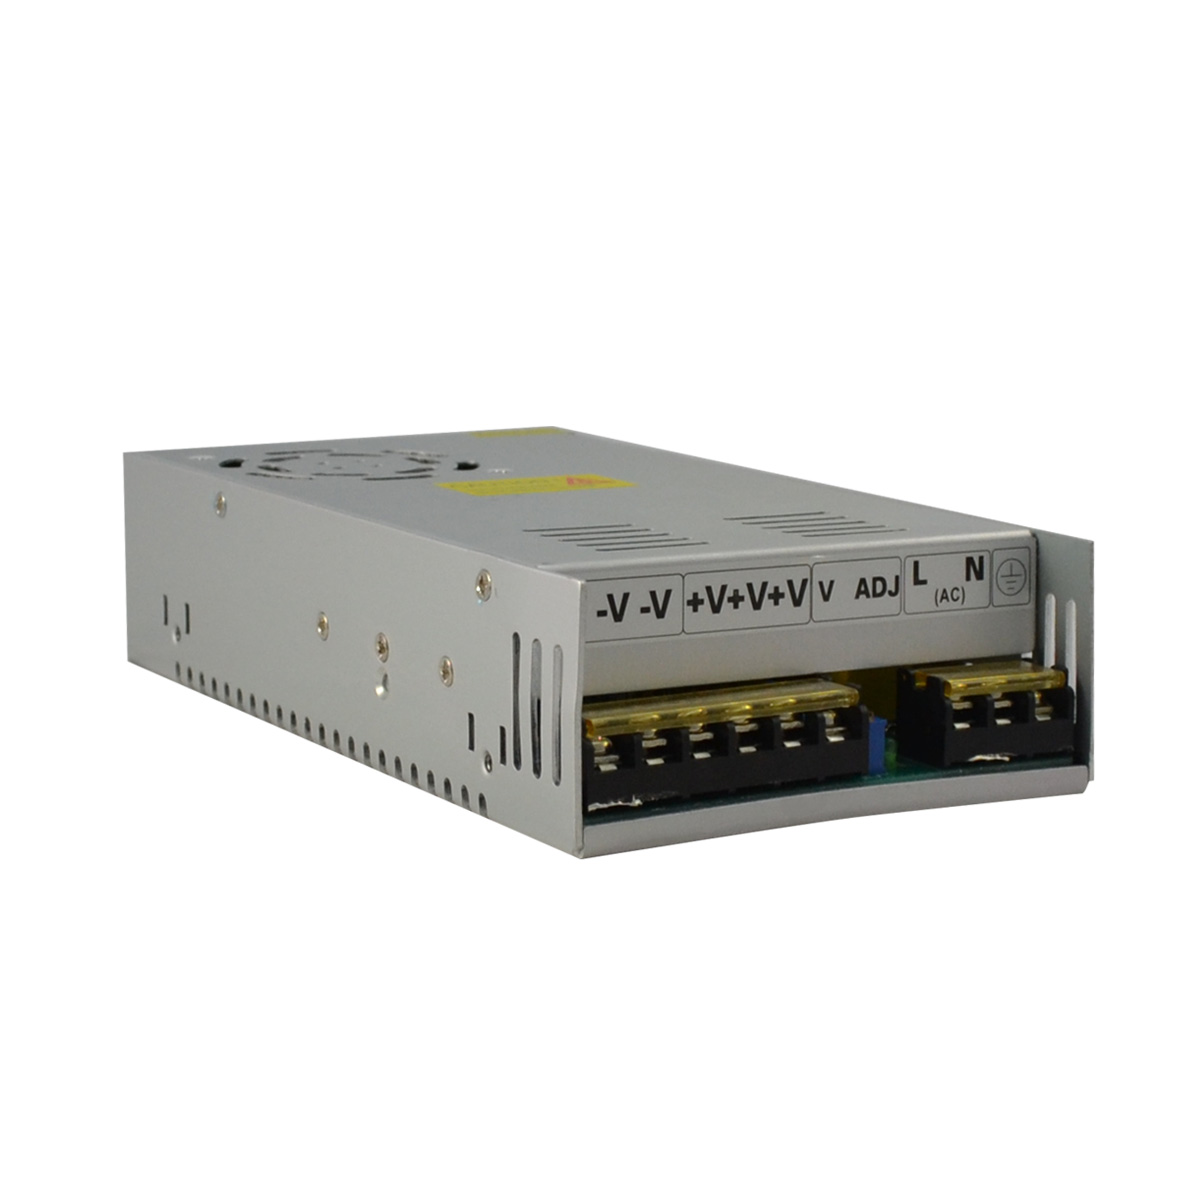 Replacement for power supply centralized 12vDC 30A 18 channels - Image 1